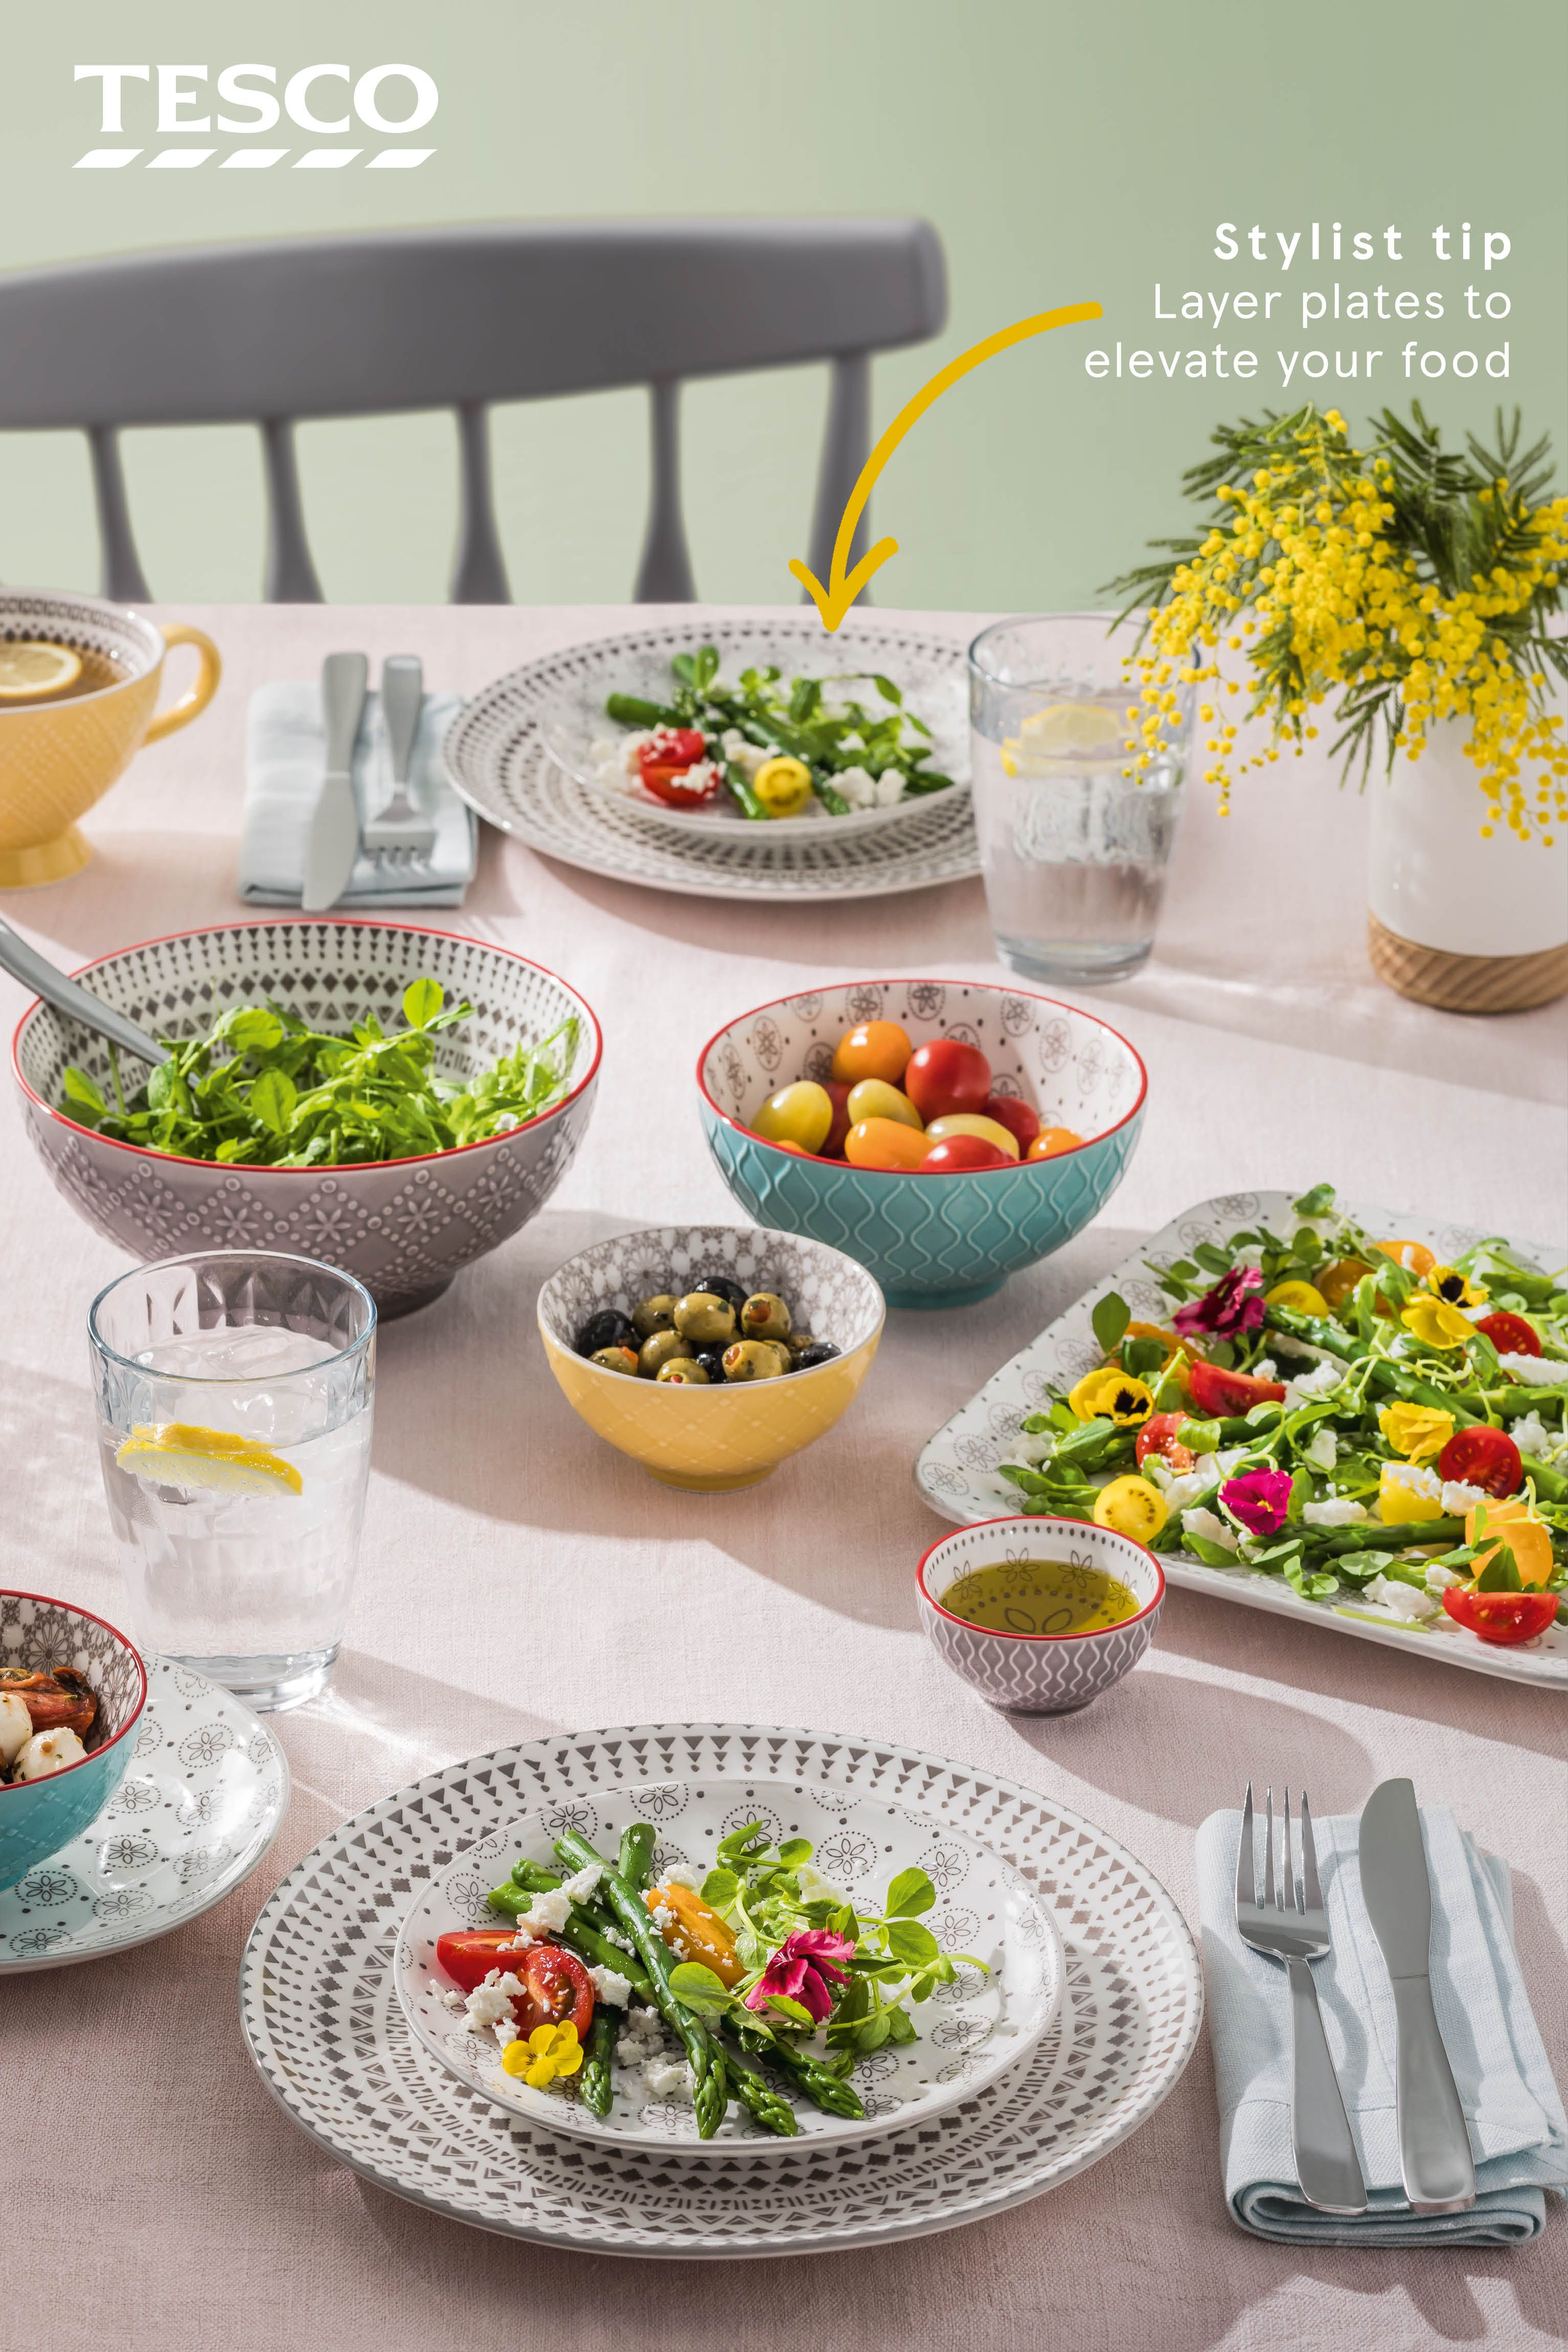 Featuring mosaic like designs and textured surfaces this modern dinnerware set will bring colour to your kitchen available in selected tesco superstores